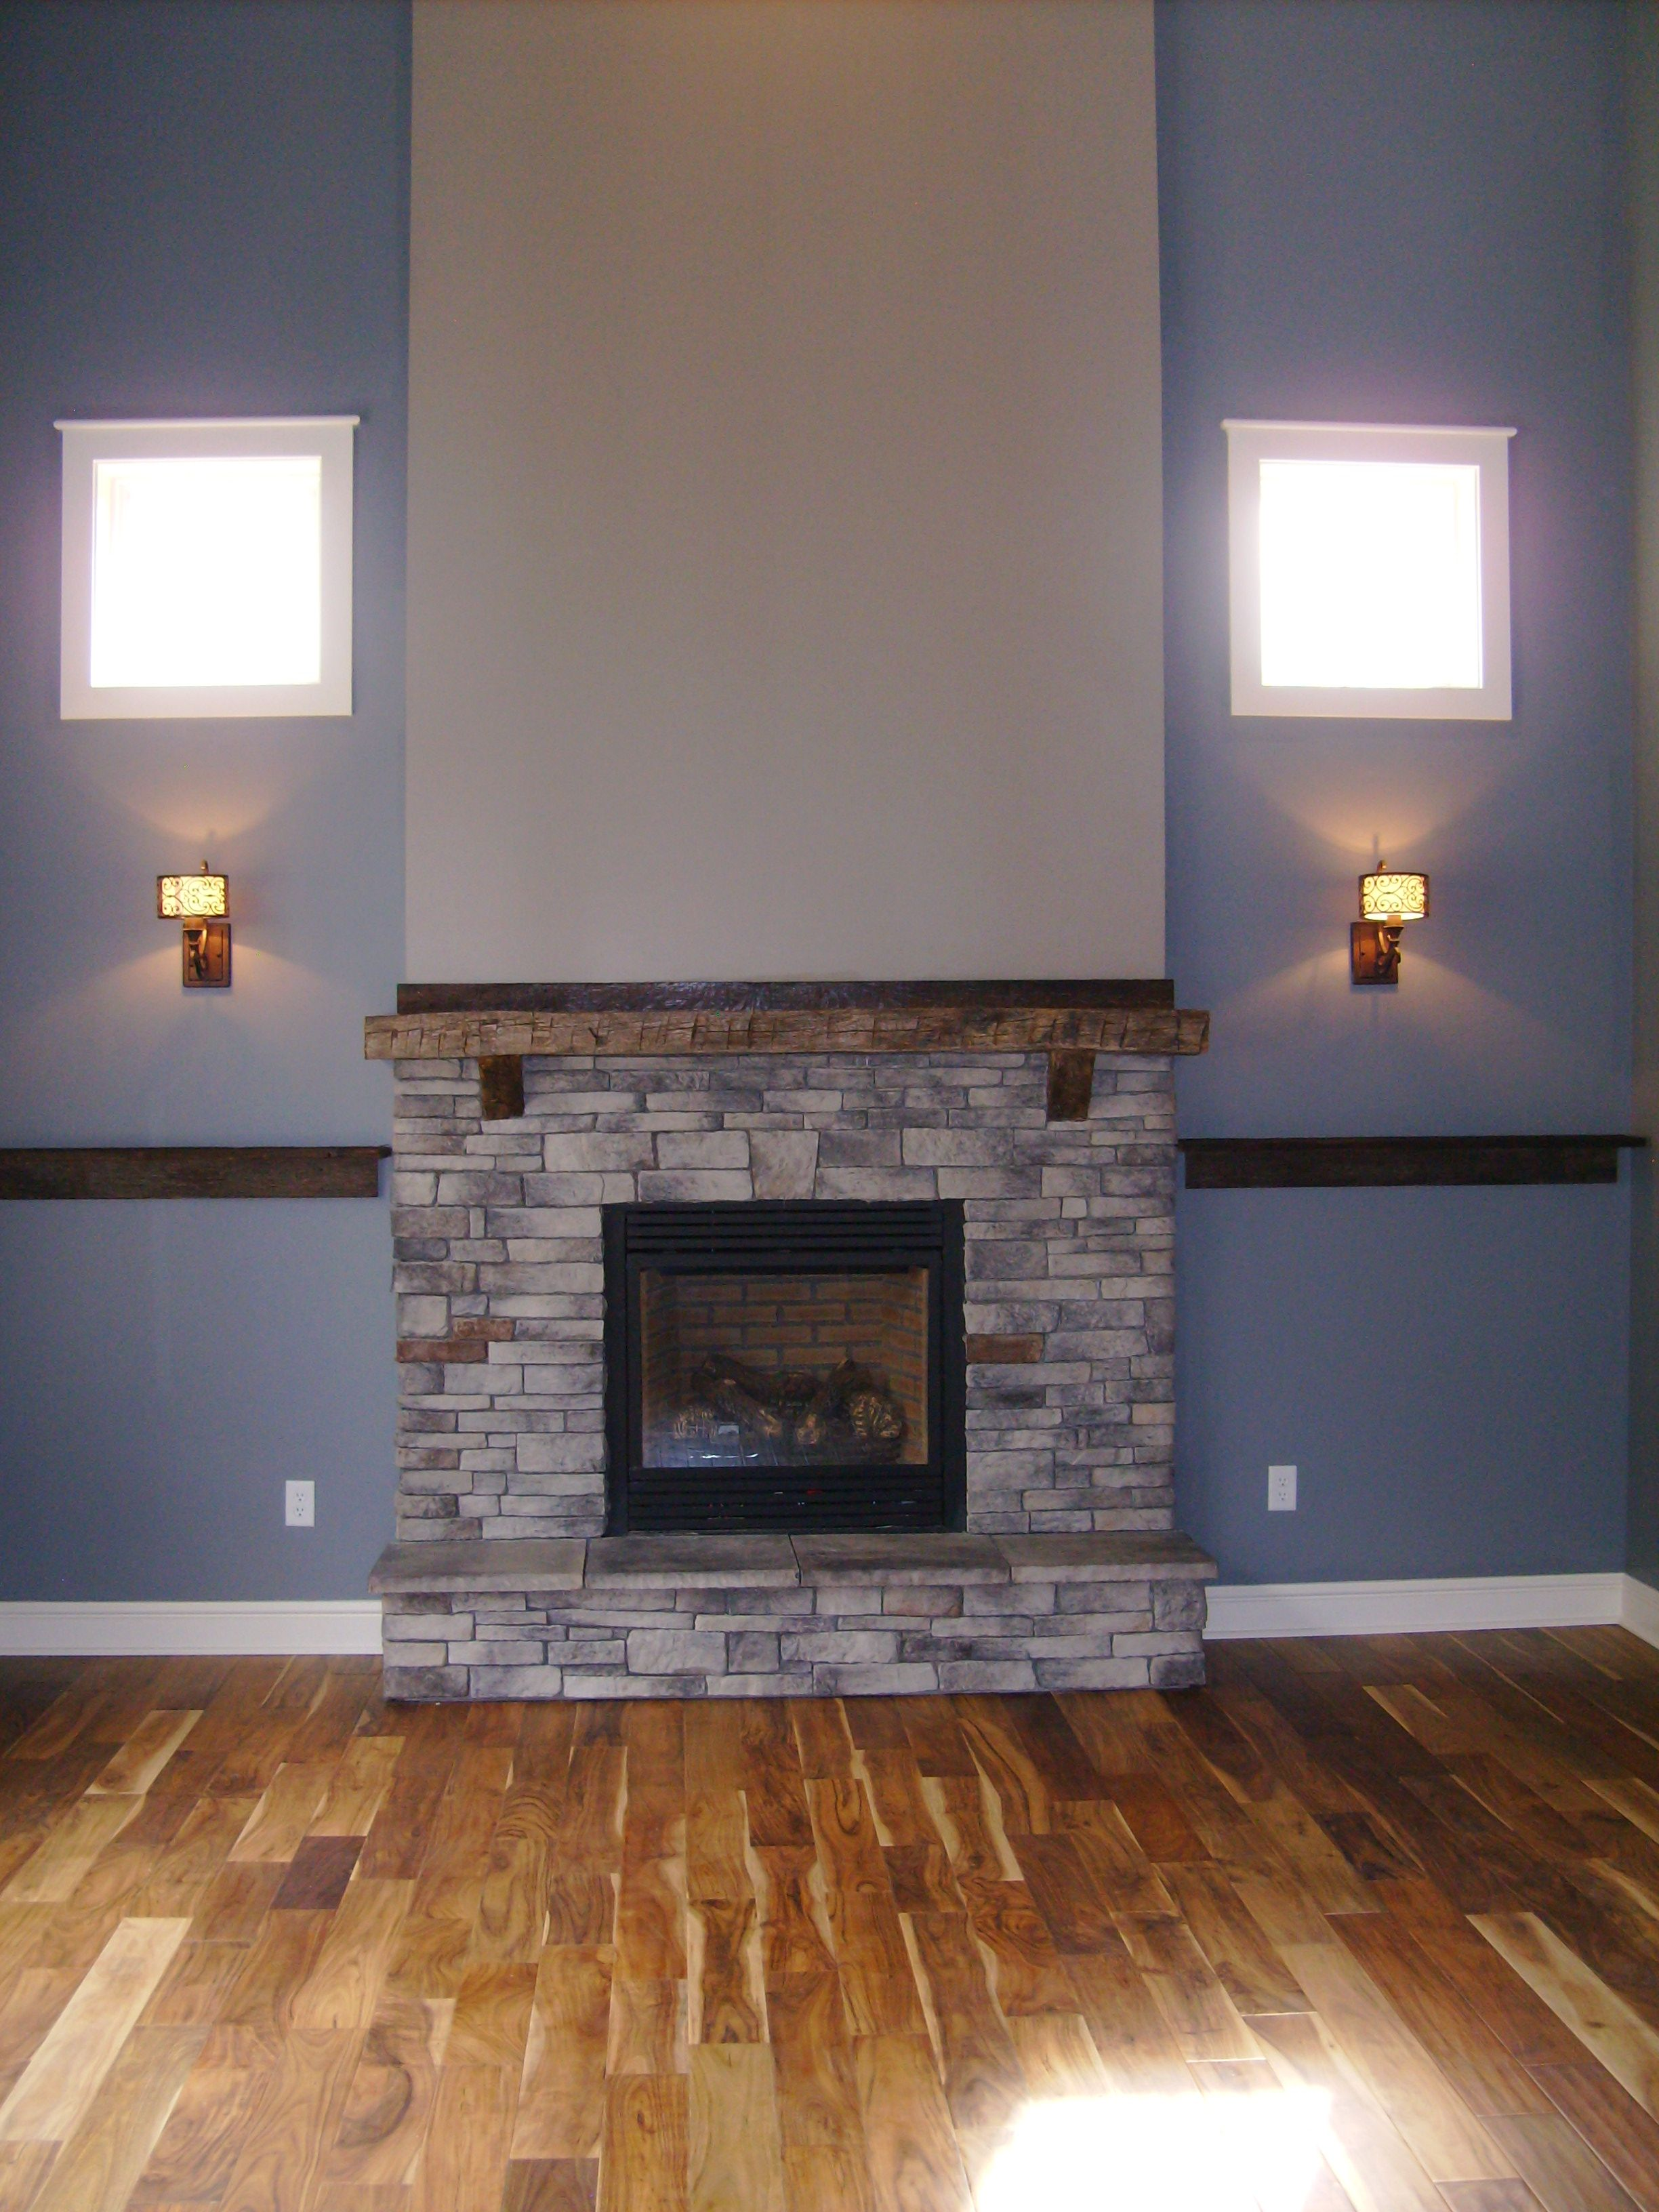 fireplace ideas fireplacescorner clearance pin fireplaceelectric gas fireplacesgas cabin corner zero framing wpyninfo